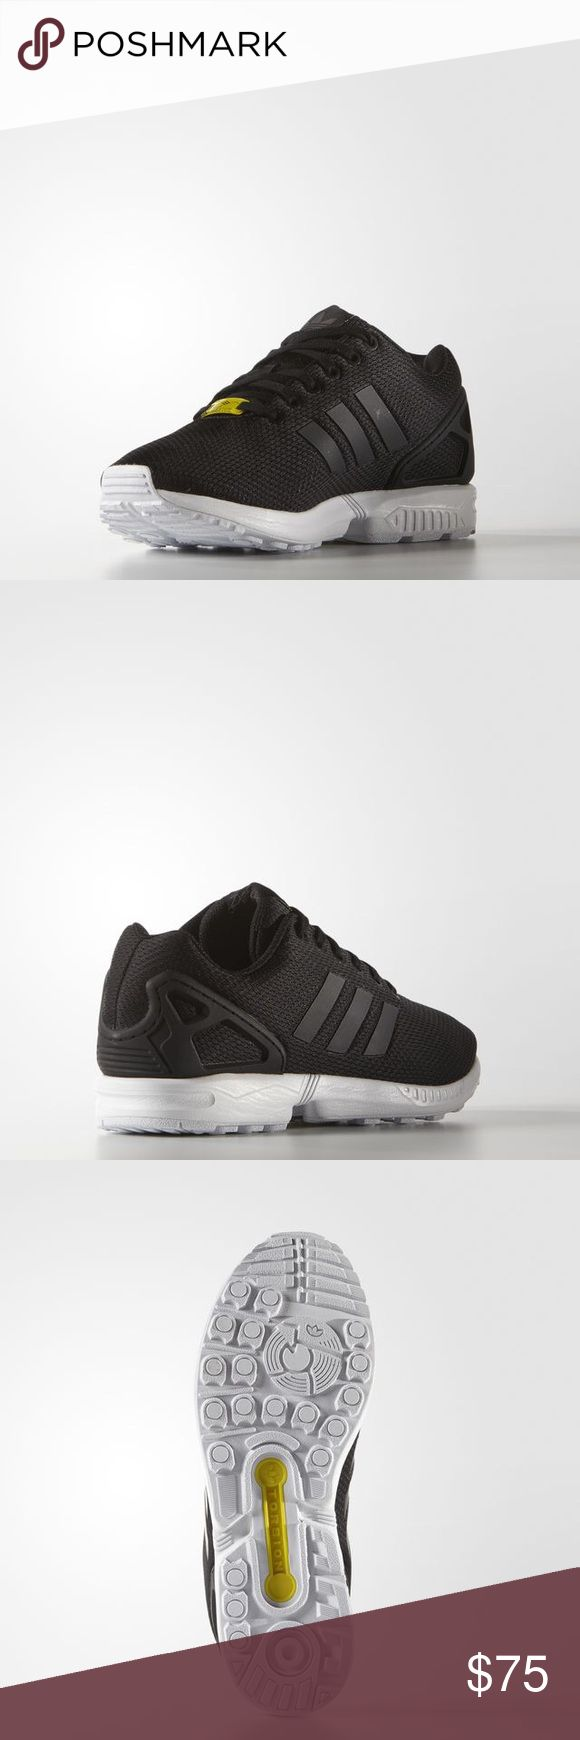 ZX Flux Black Black White Men's size 12. New with tags. adidas Shoes Sneakers